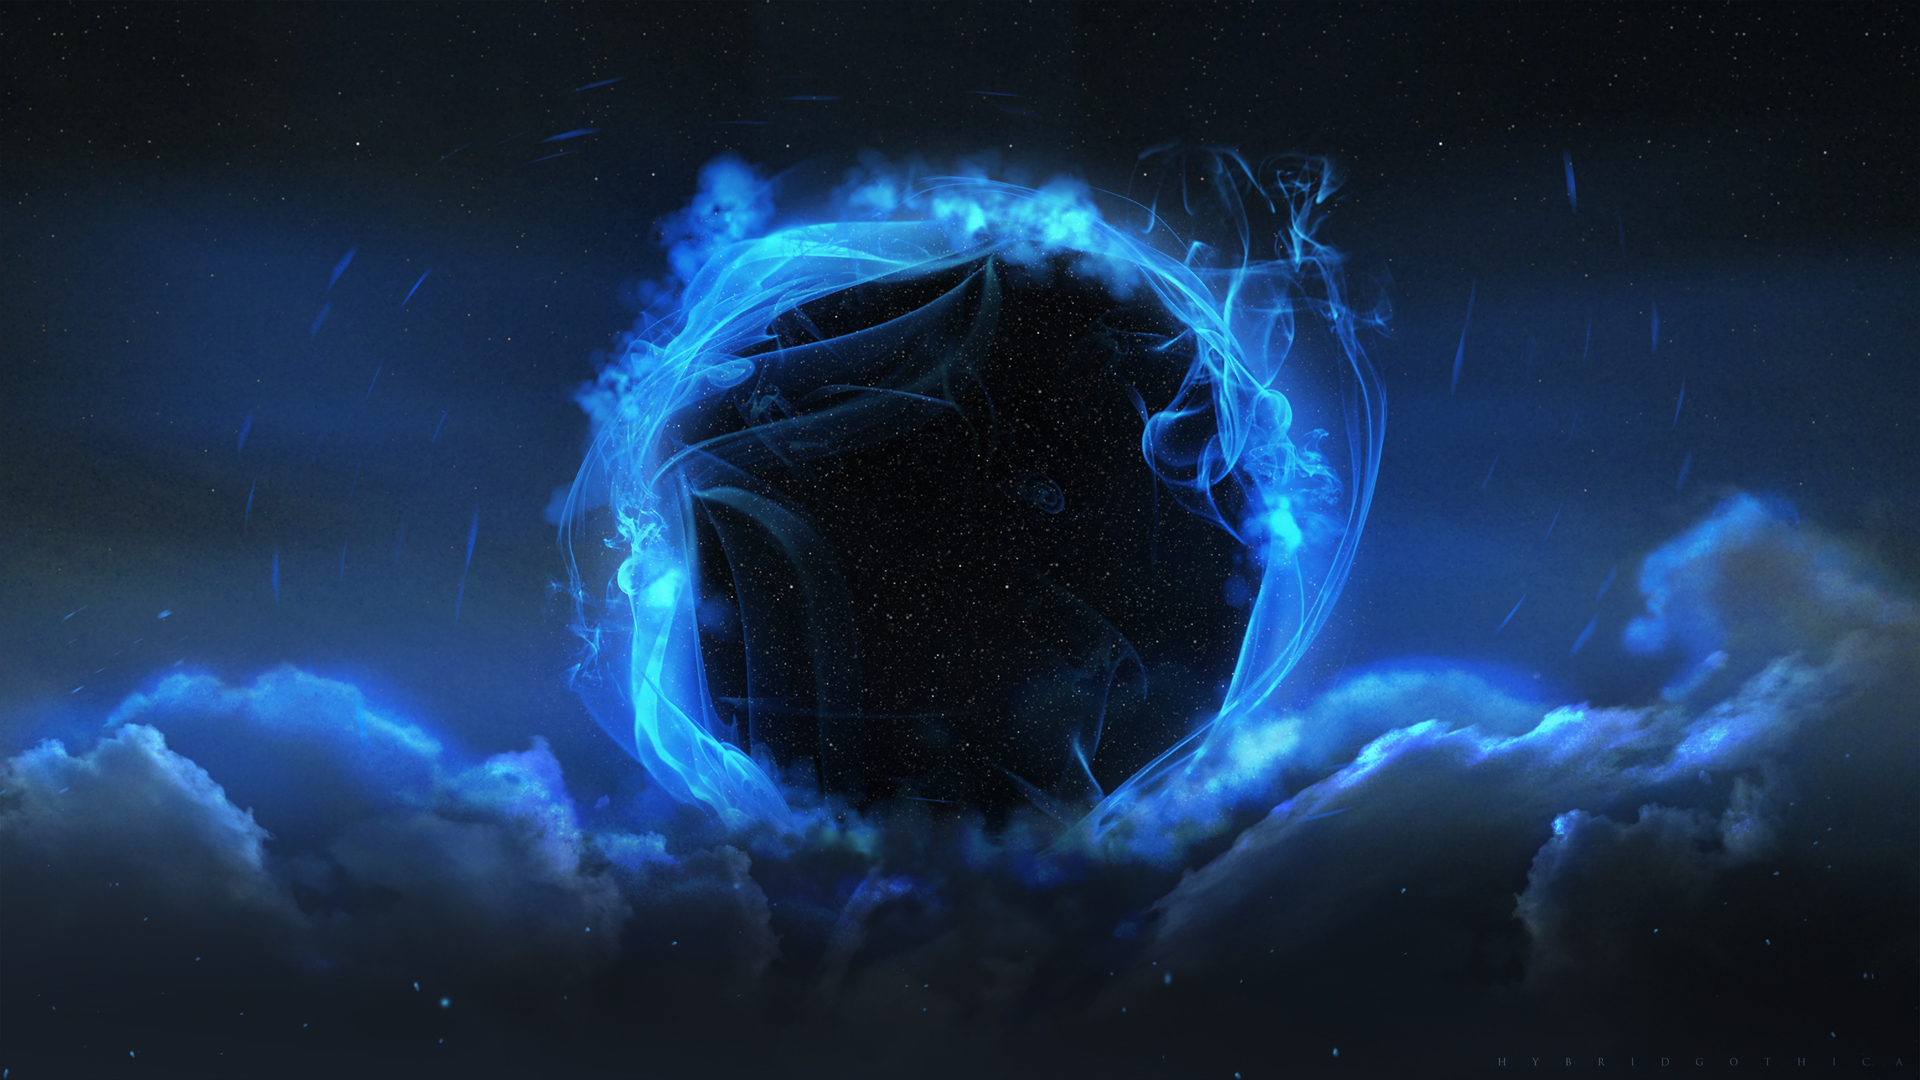 Tesseract - Spaceartist - Space - Black Hole Sci Fi , HD Wallpaper & Backgrounds